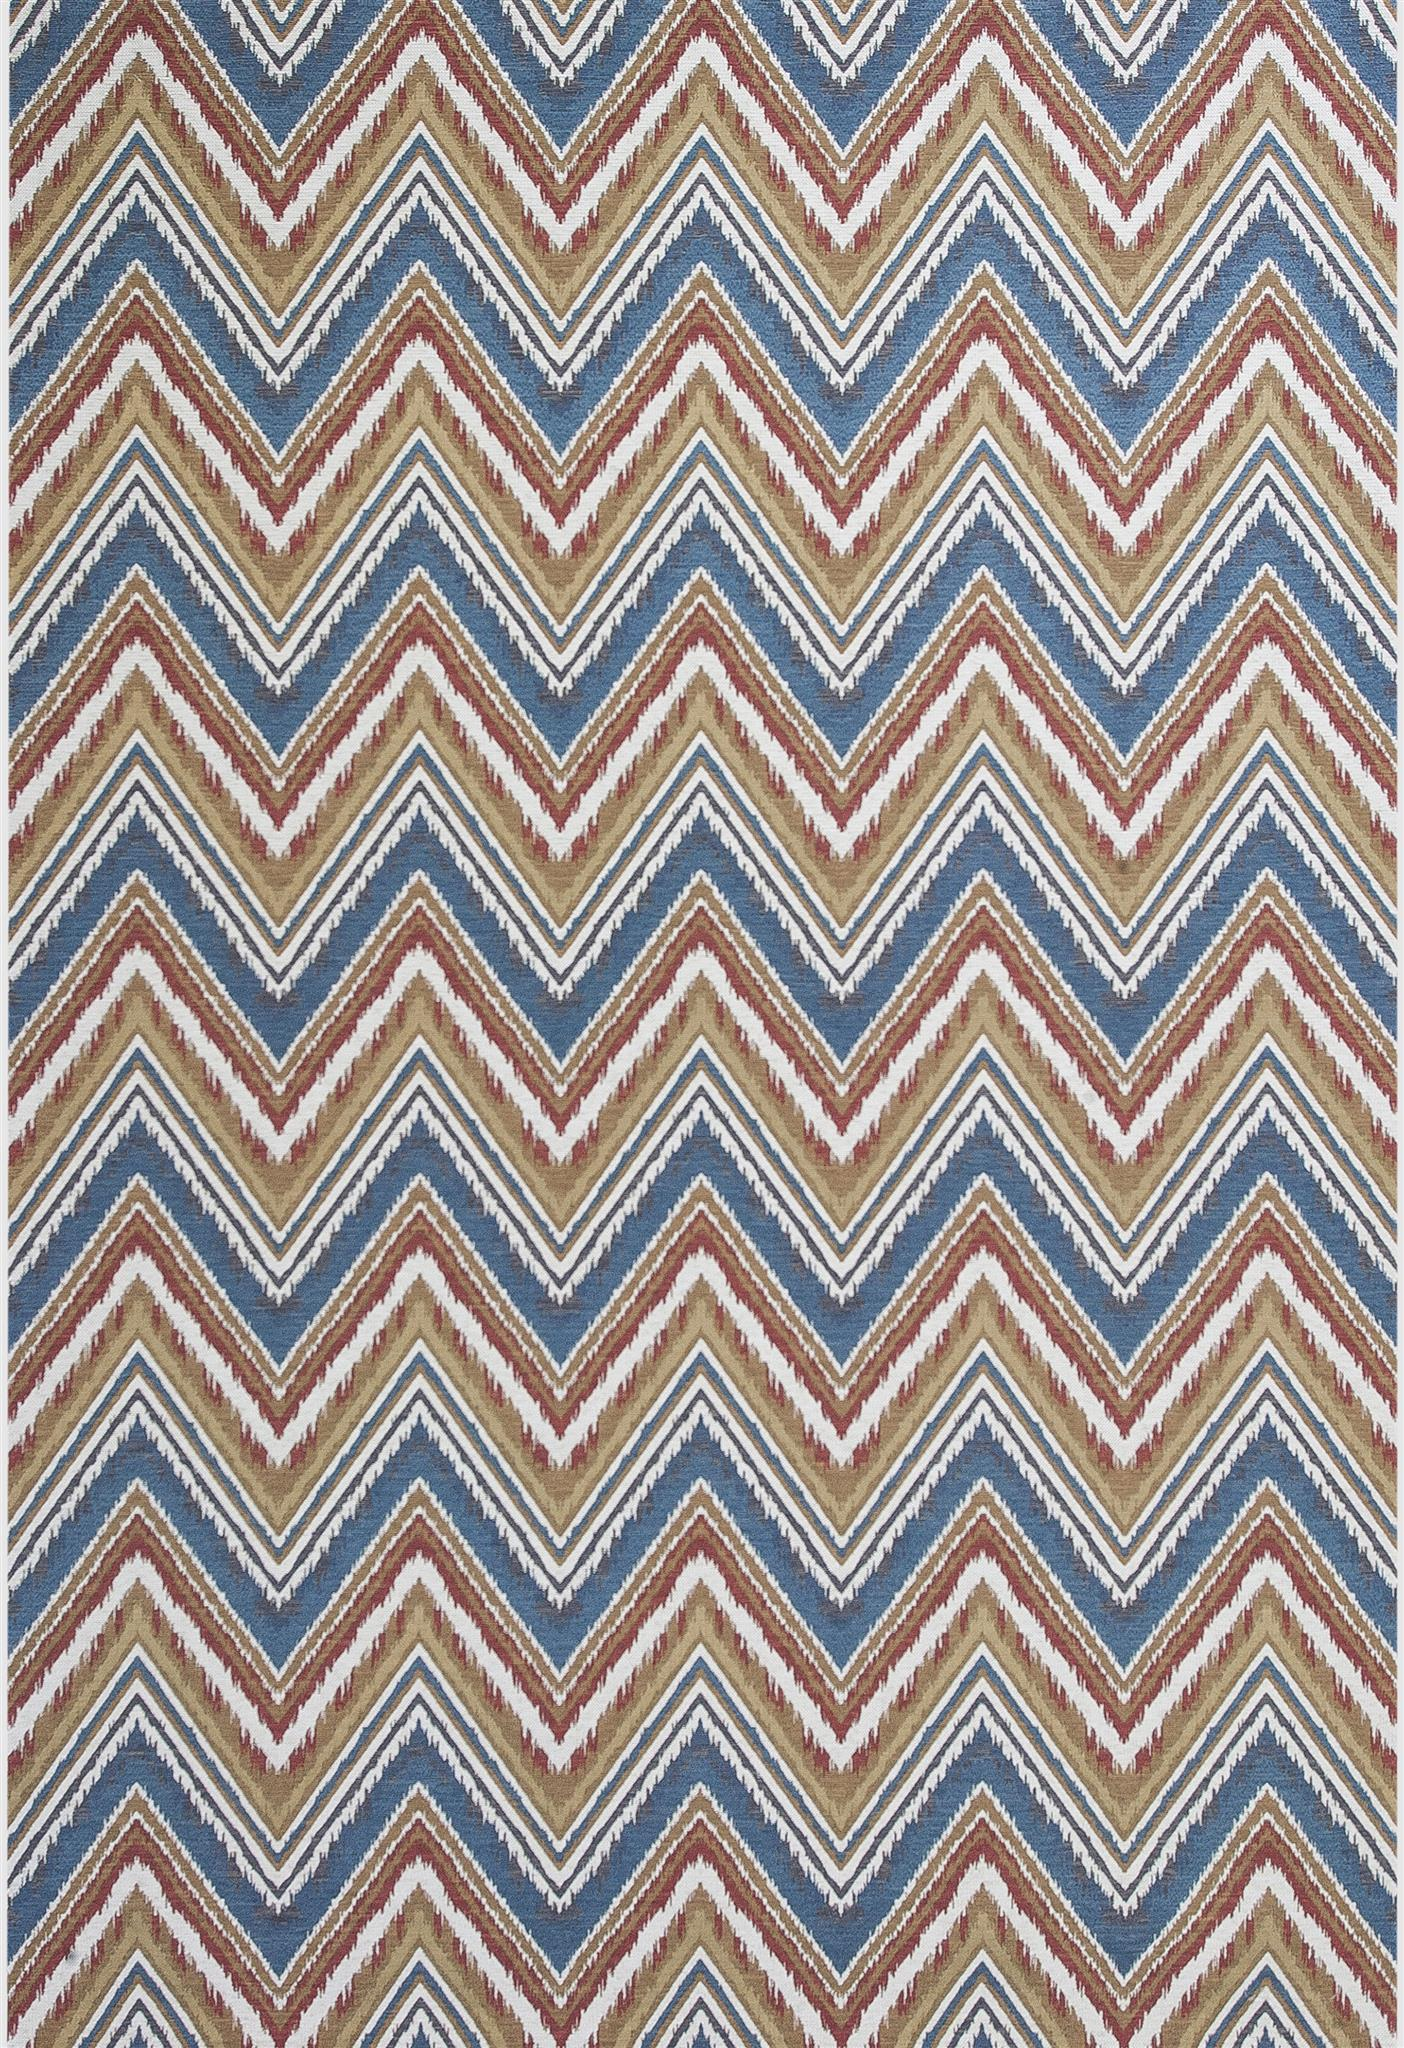 Horizon 5723 Multi Chevron